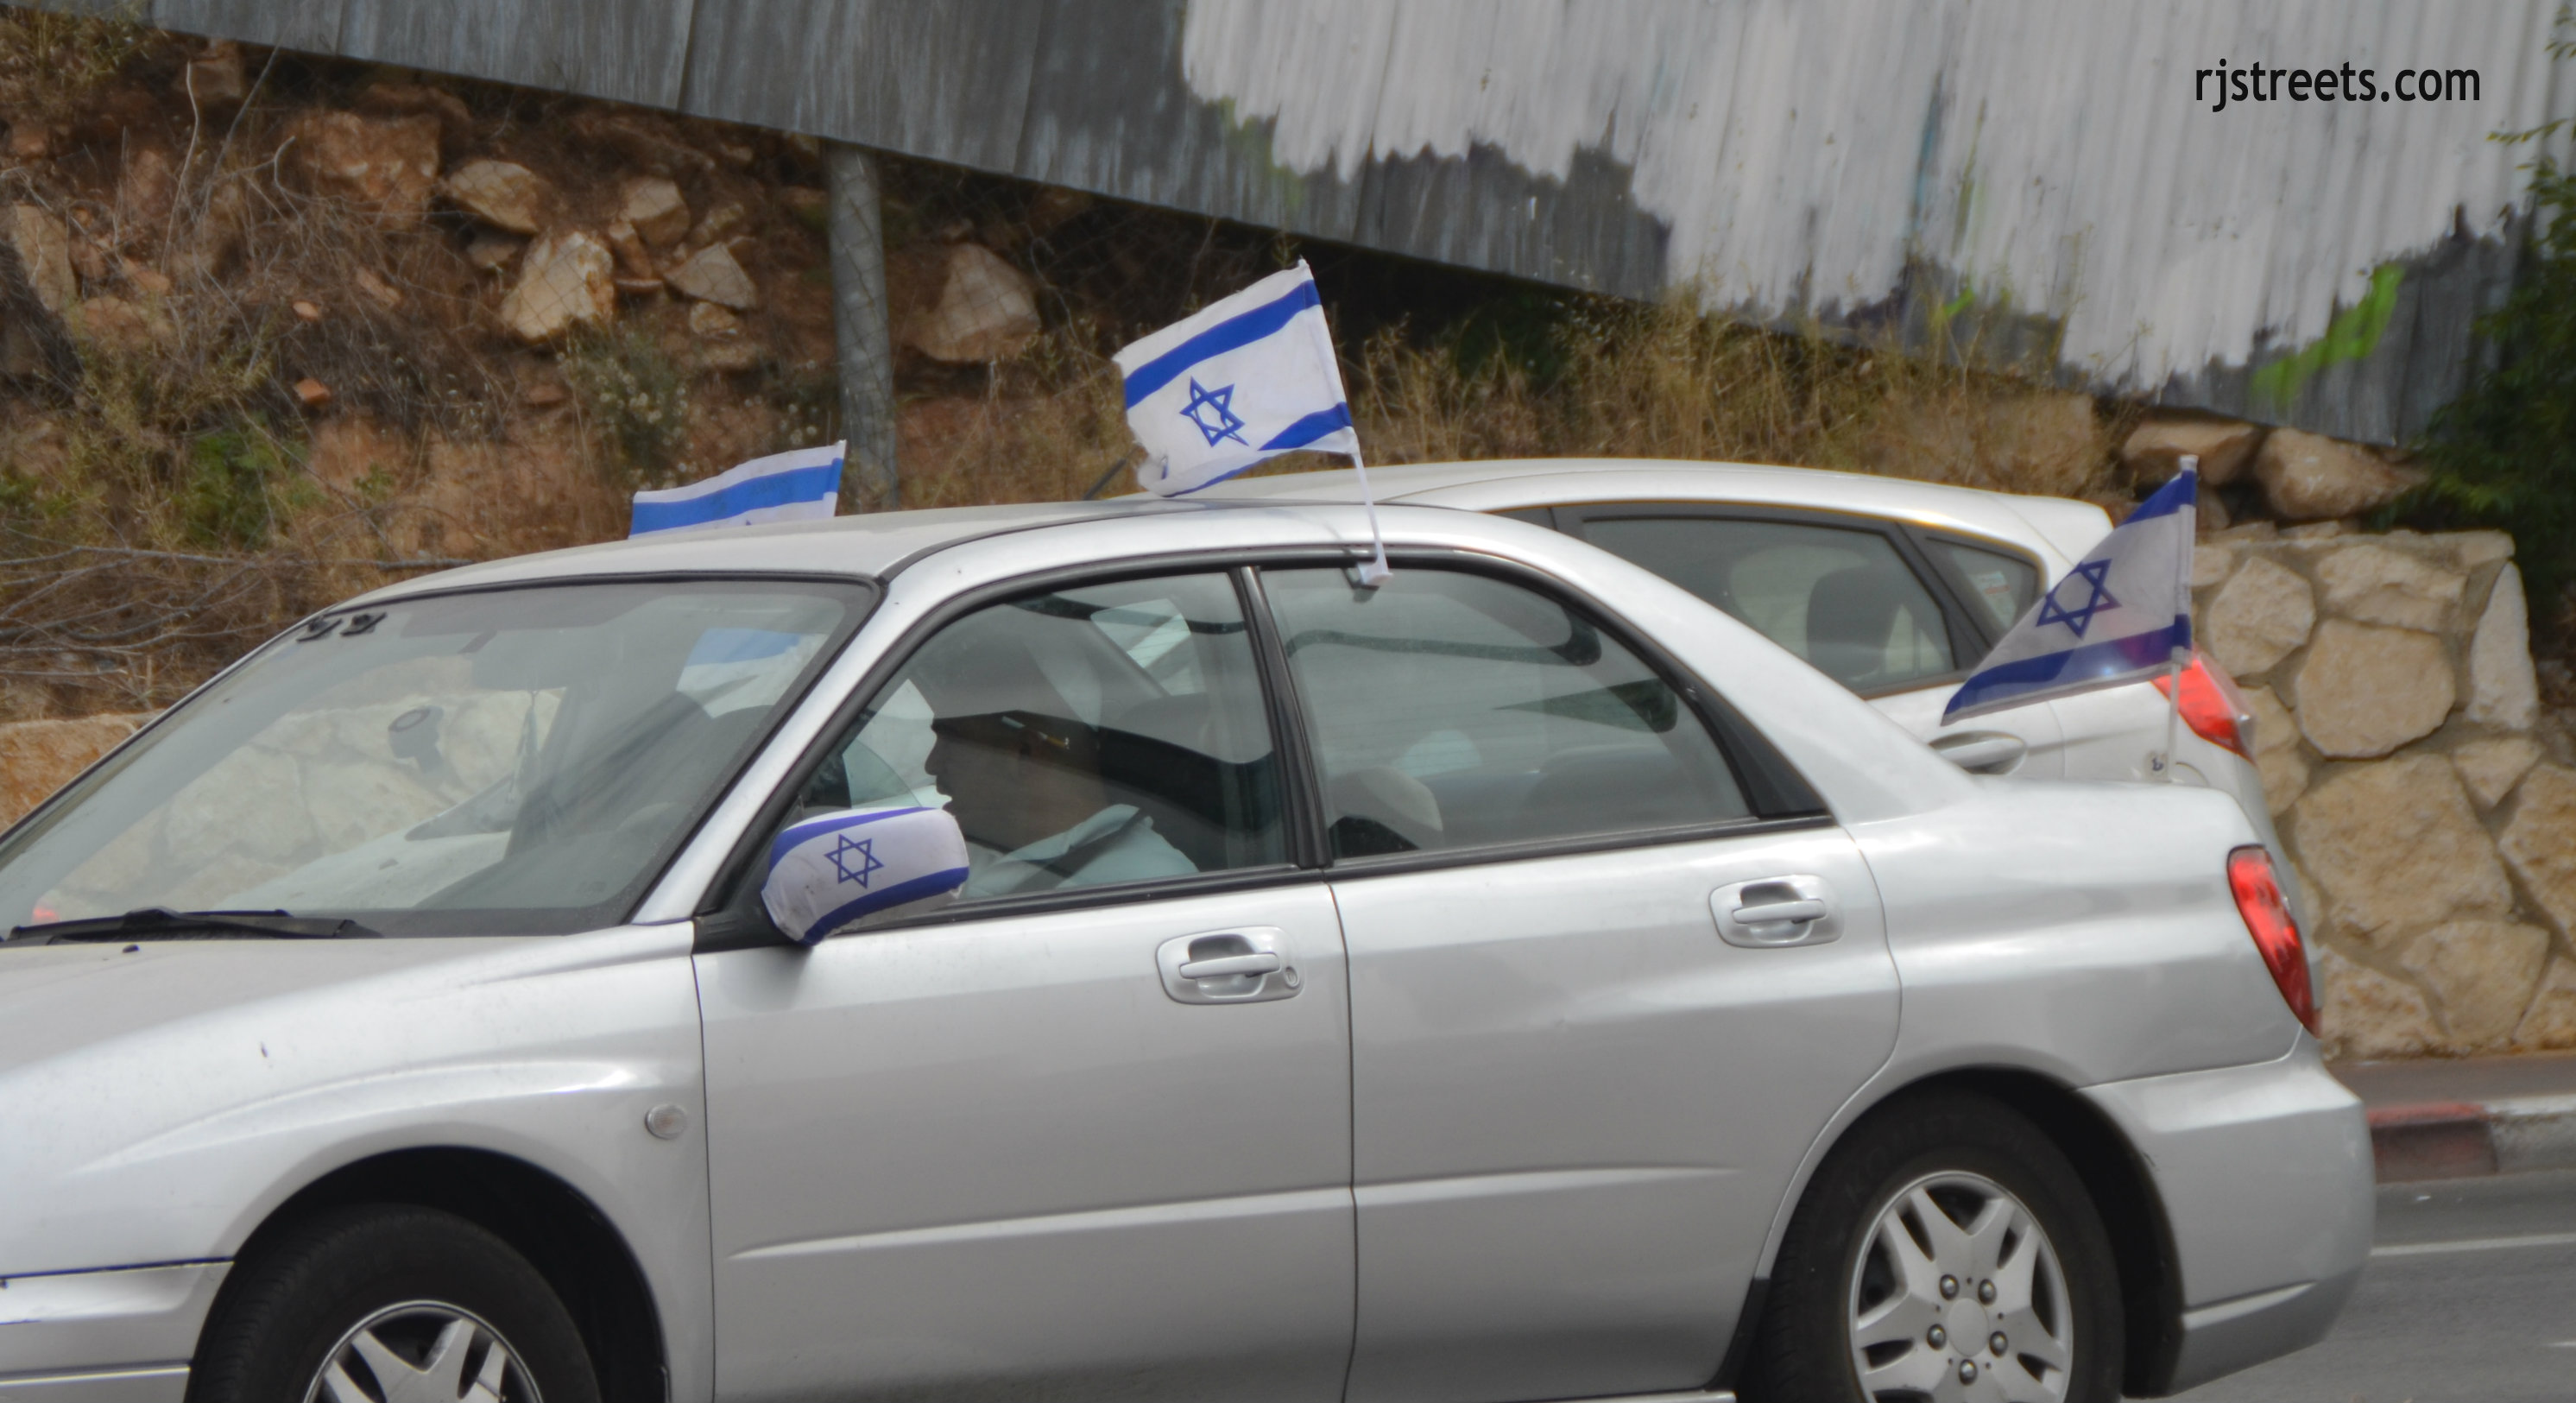 image Israeli flags